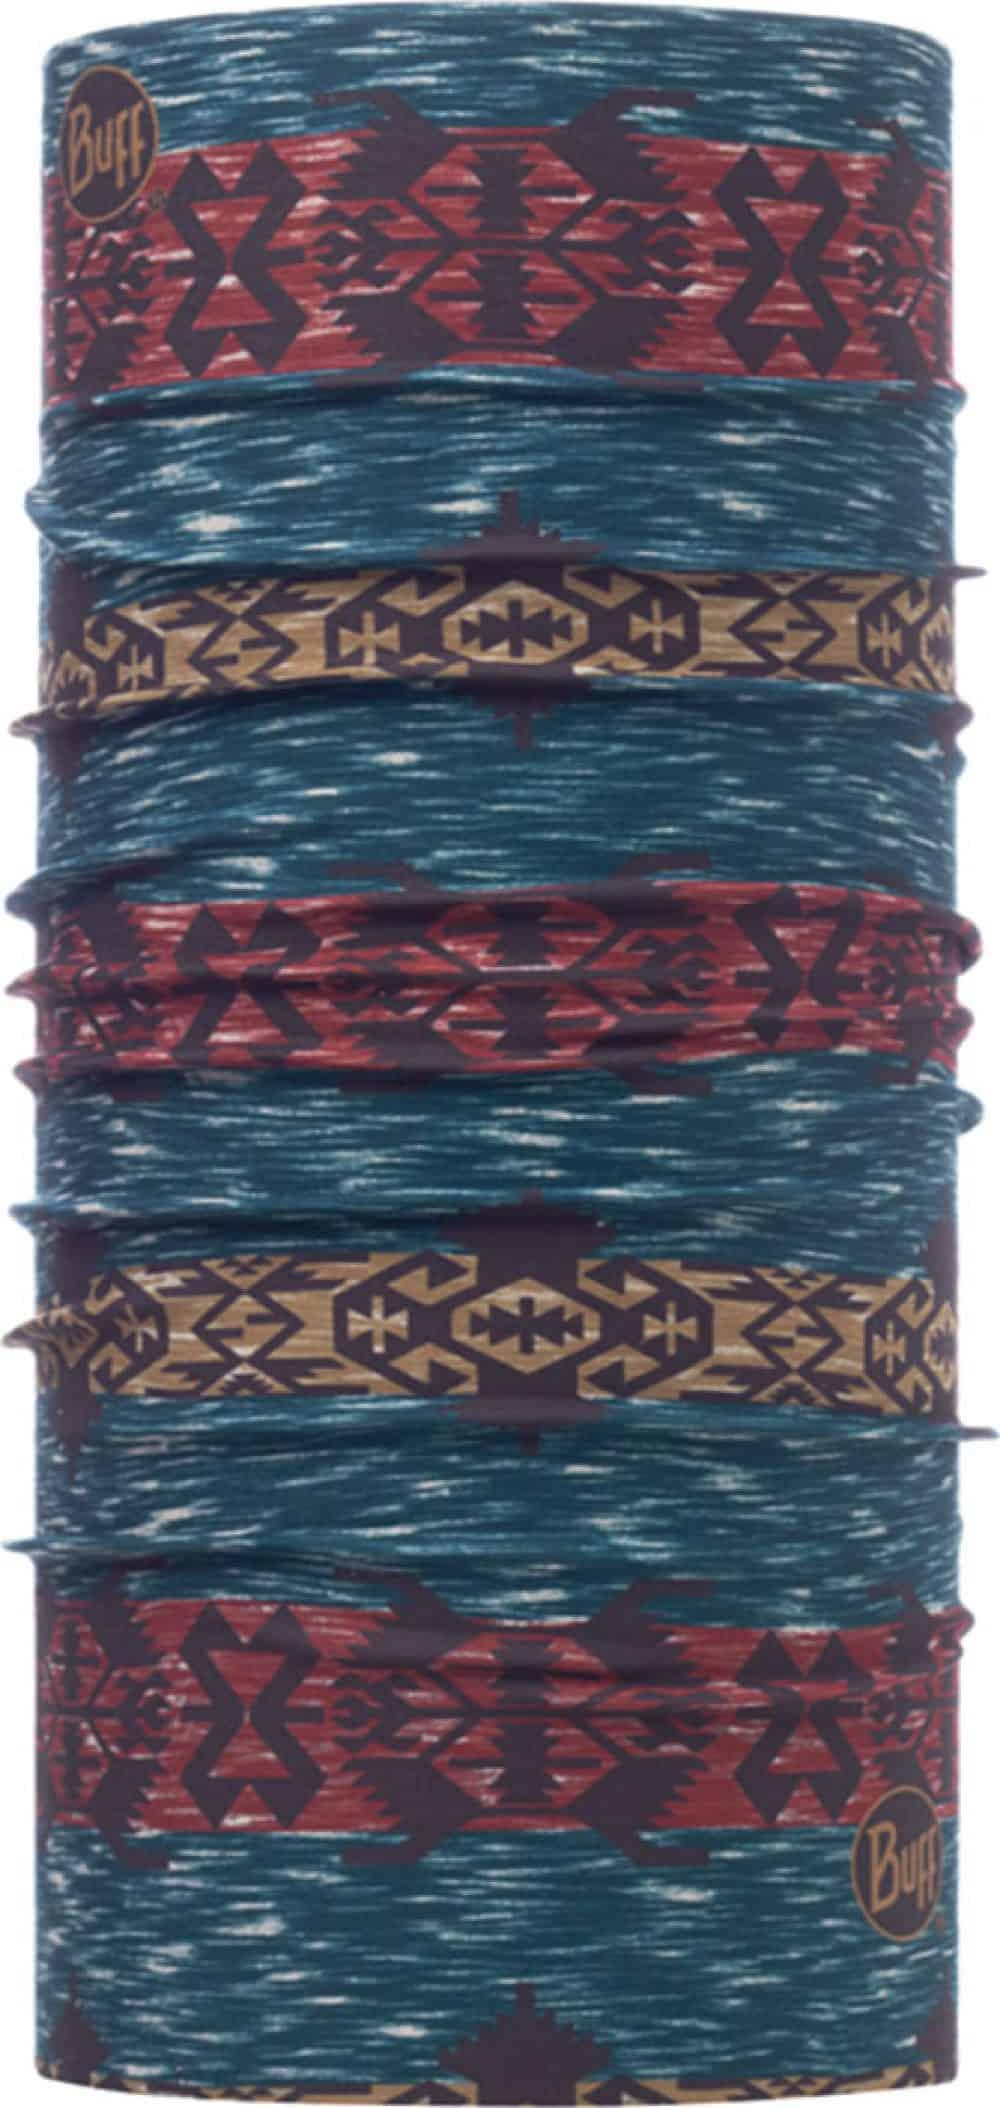 "A product photo of the High UV Buff® ""Shade Deepteal Blue"". Source: buff.eu"